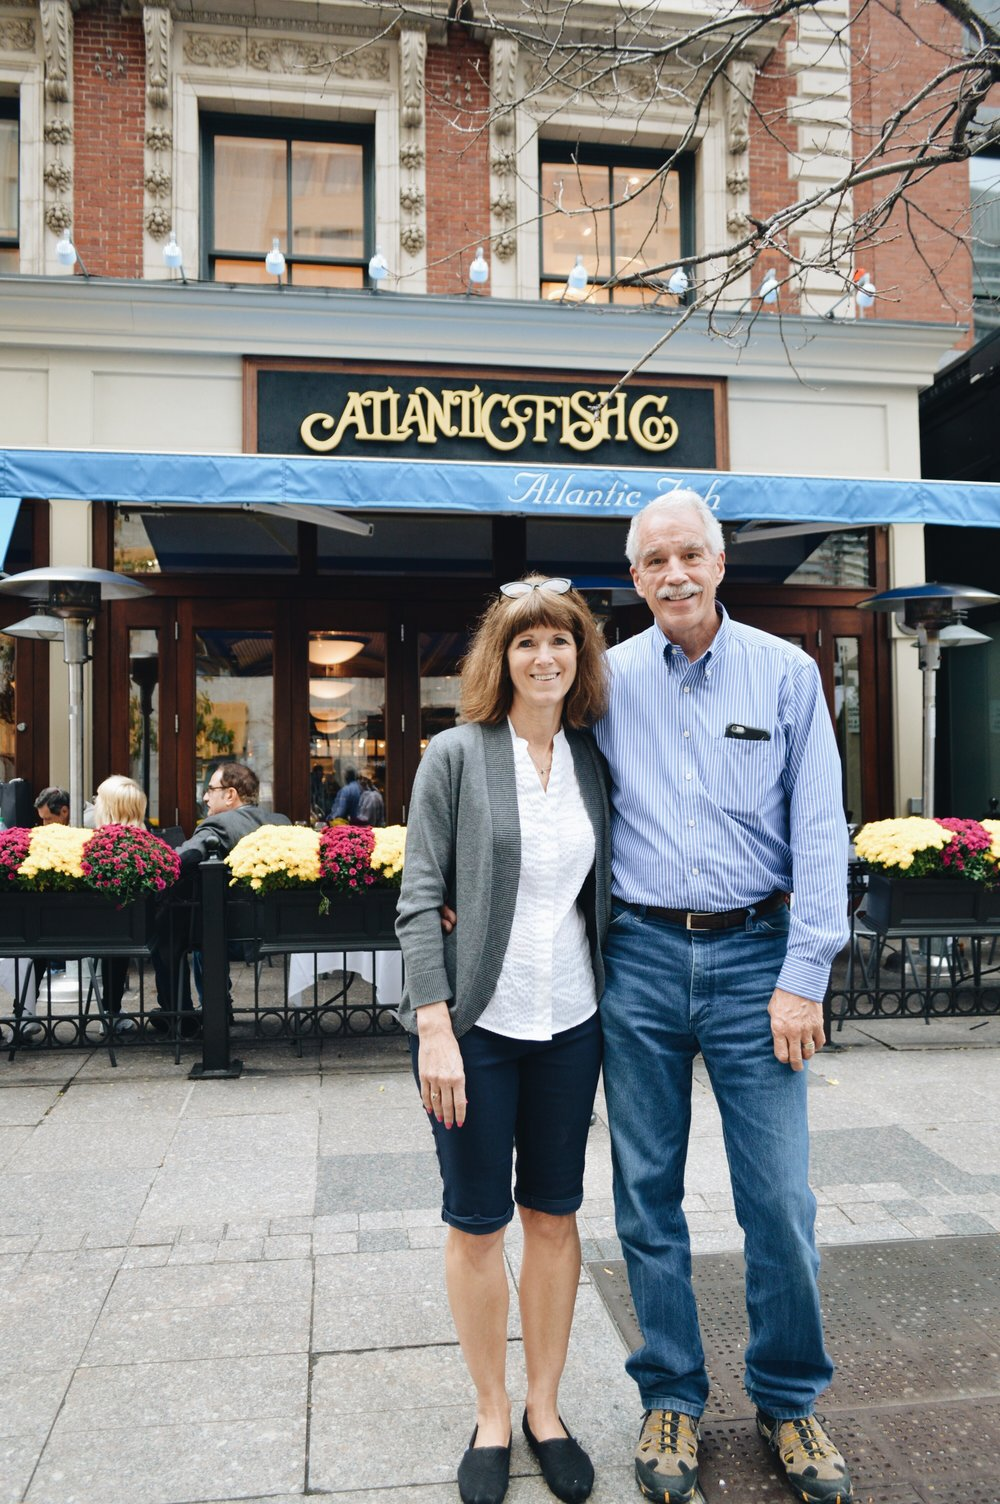 Also, they went to Boston a few years before this trip & this is the restaurant they ate at for their anniversary!